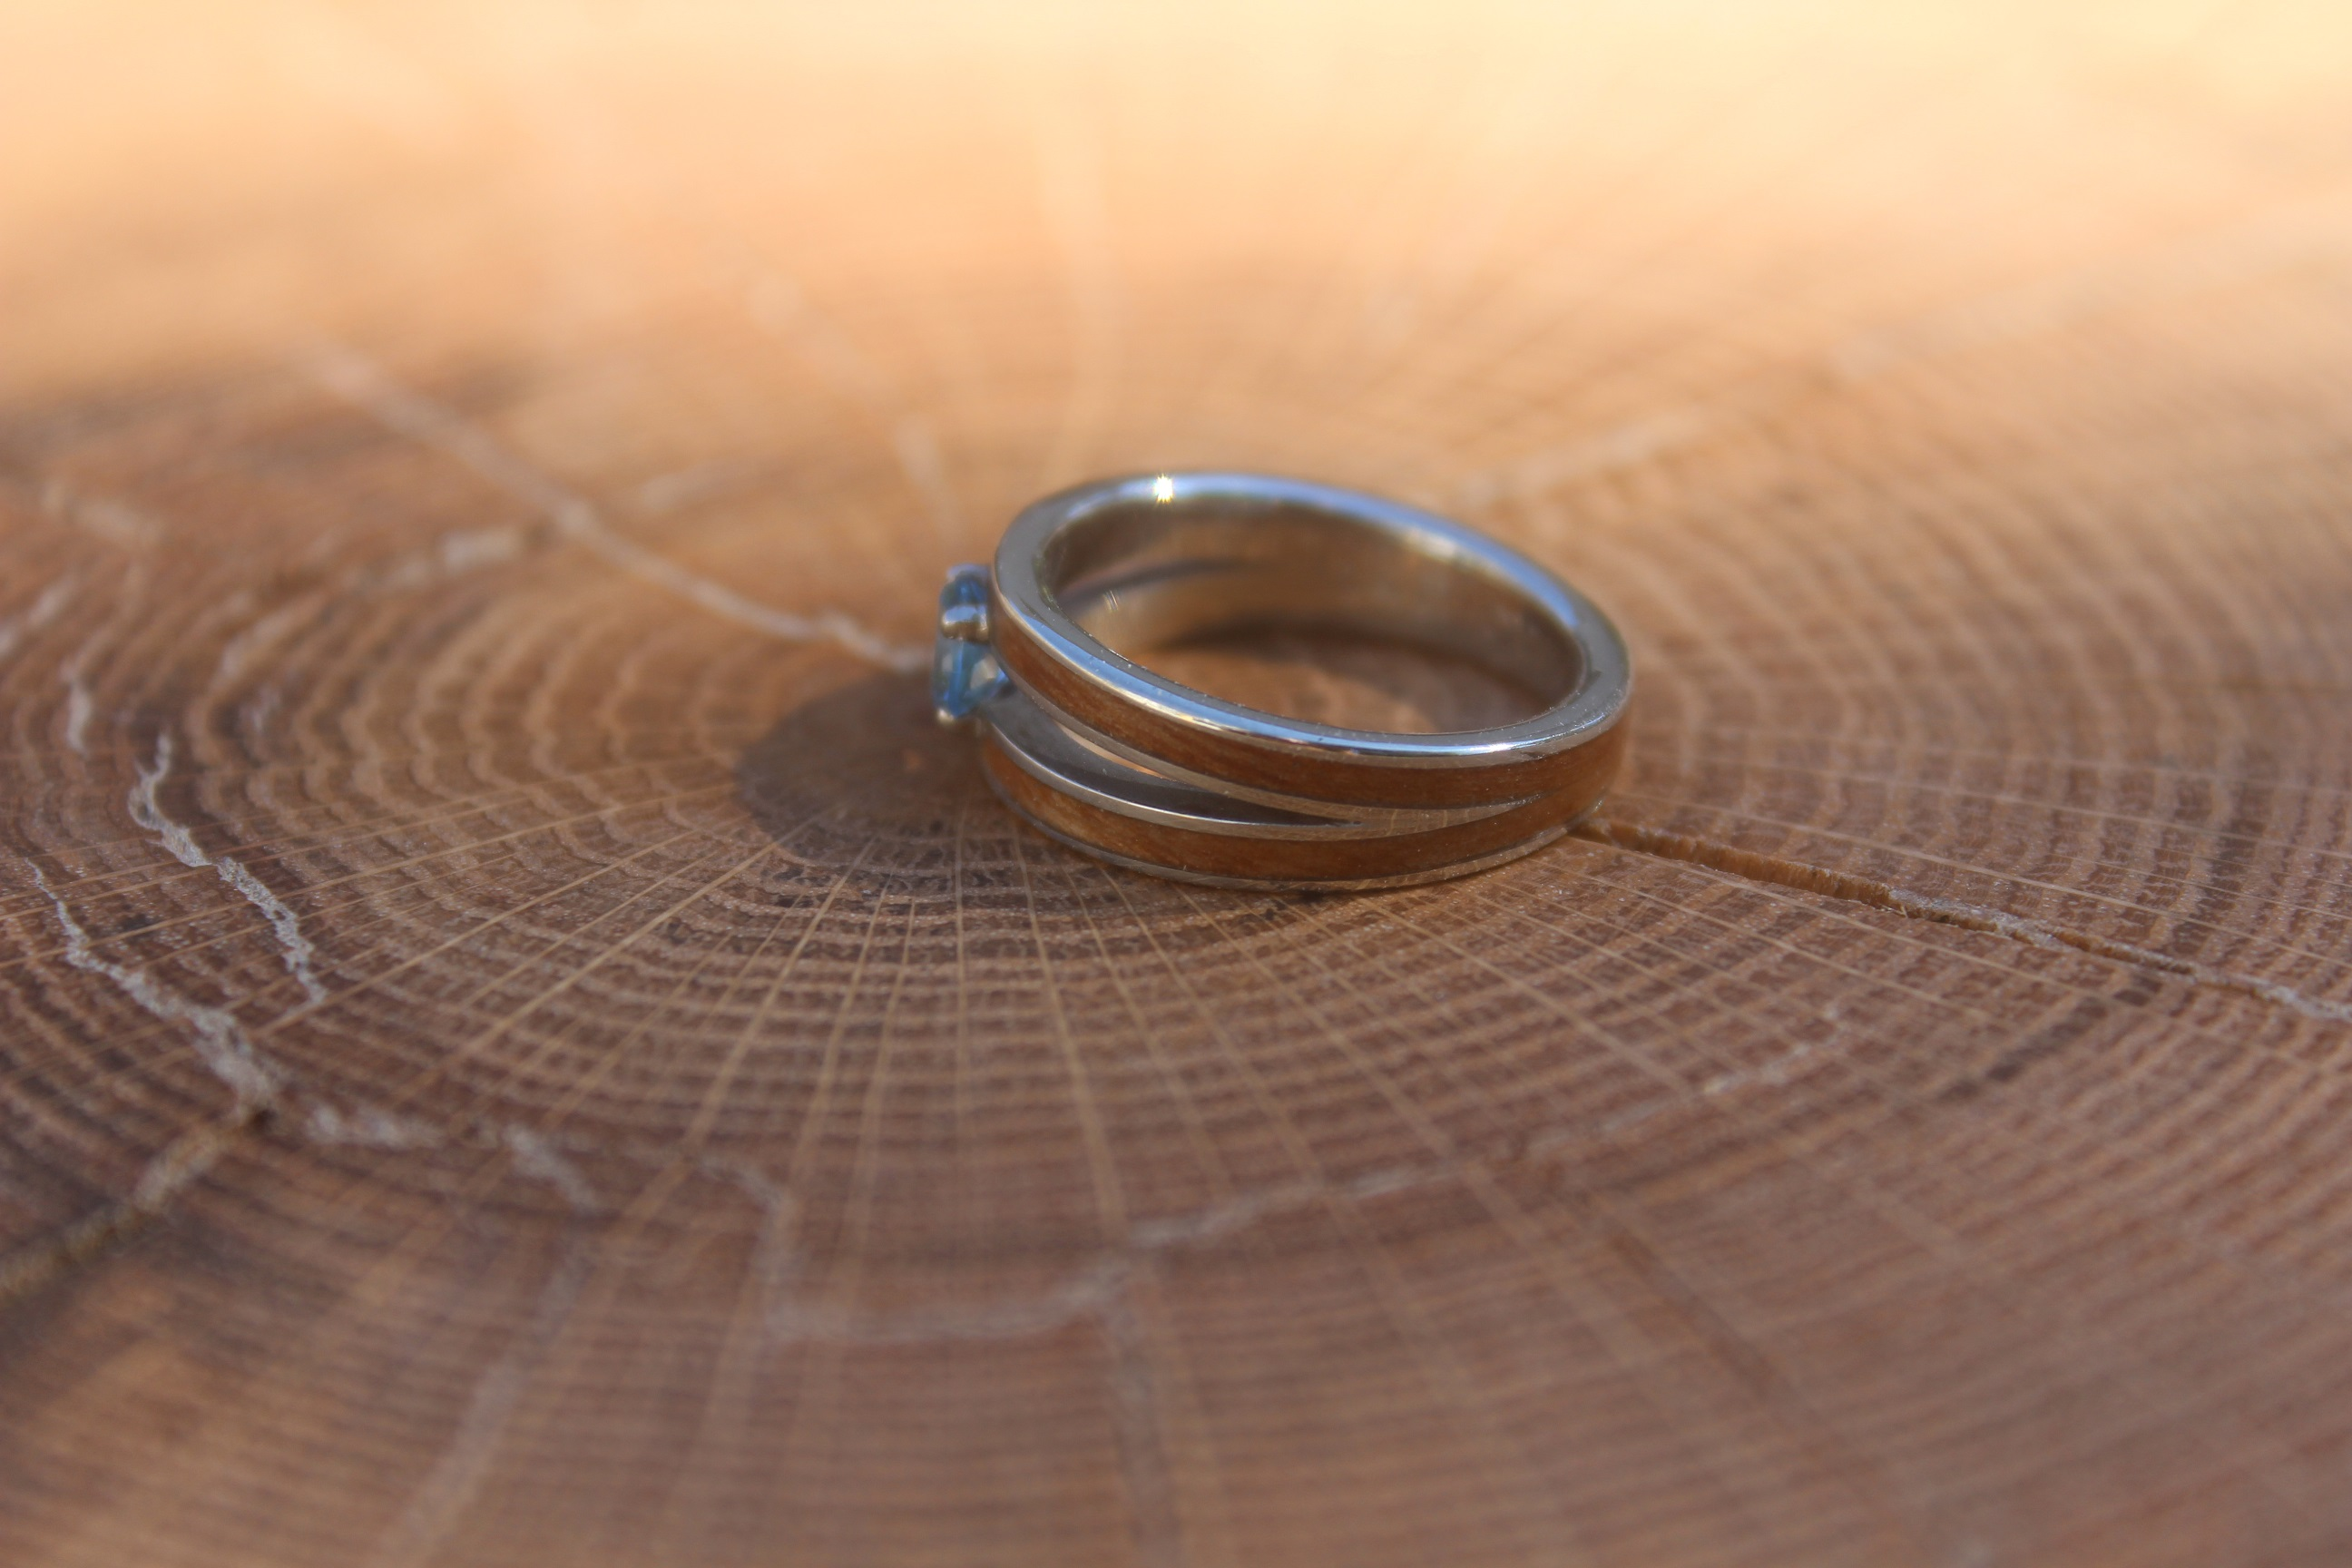 Image48 jackman works jackman works jackman carpentry woodworking wood diy do it yourself building making design upcycled upcycling recycled reclaimed ring box engagement ring solutioingenieria Gallery